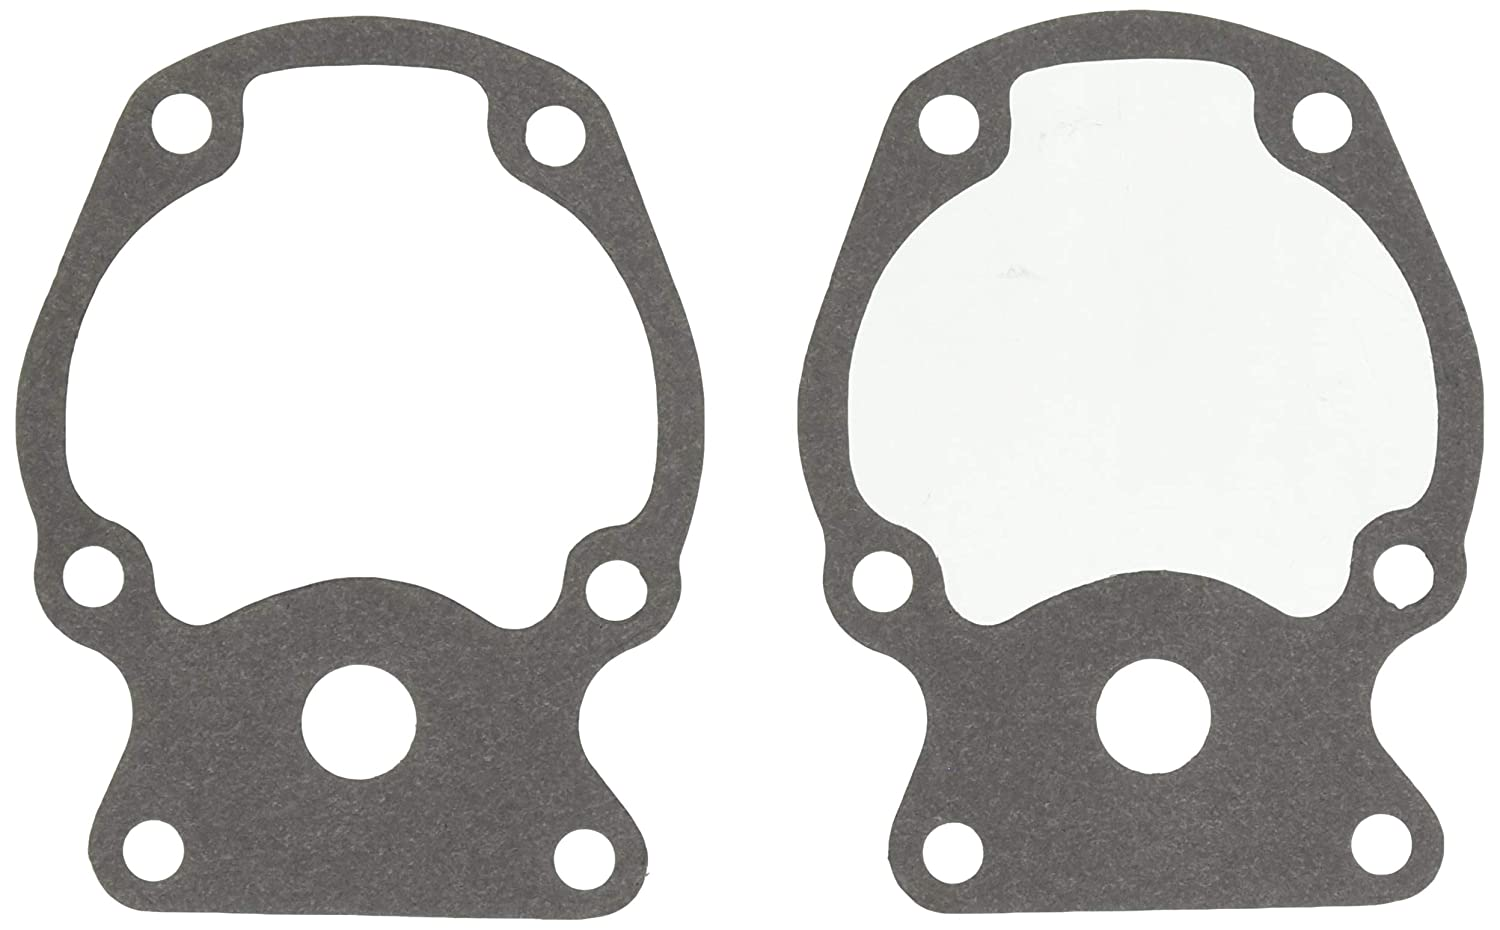 Sierra International 18-0124-9 Gasket